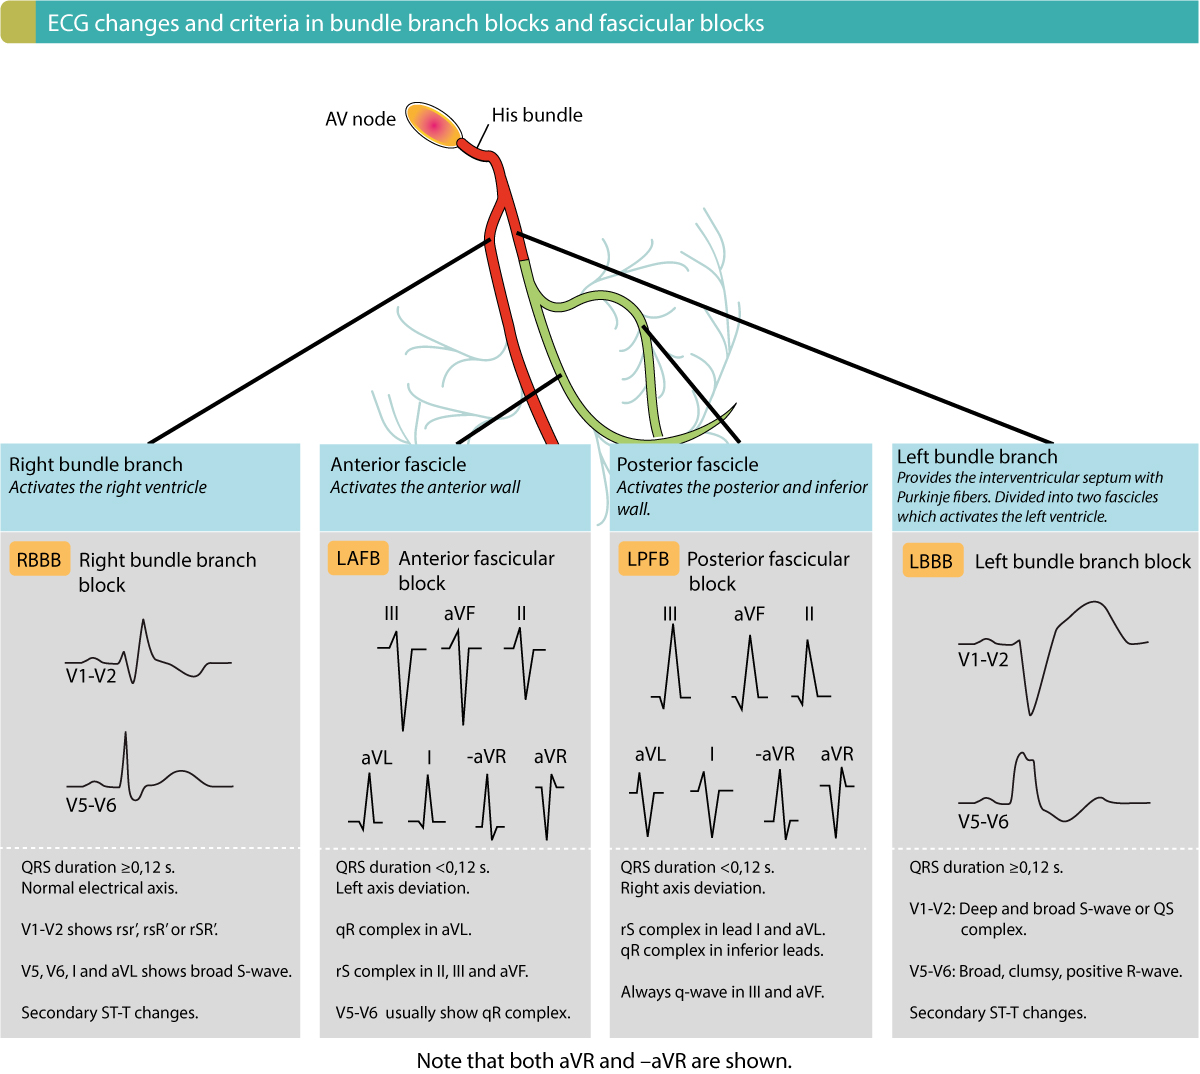 Figure 3. Overview of criteria and ECG changes in bundle branch blocks and fascicular blocks. All these intraventricular conduction delays are common and therefore important to recognize.